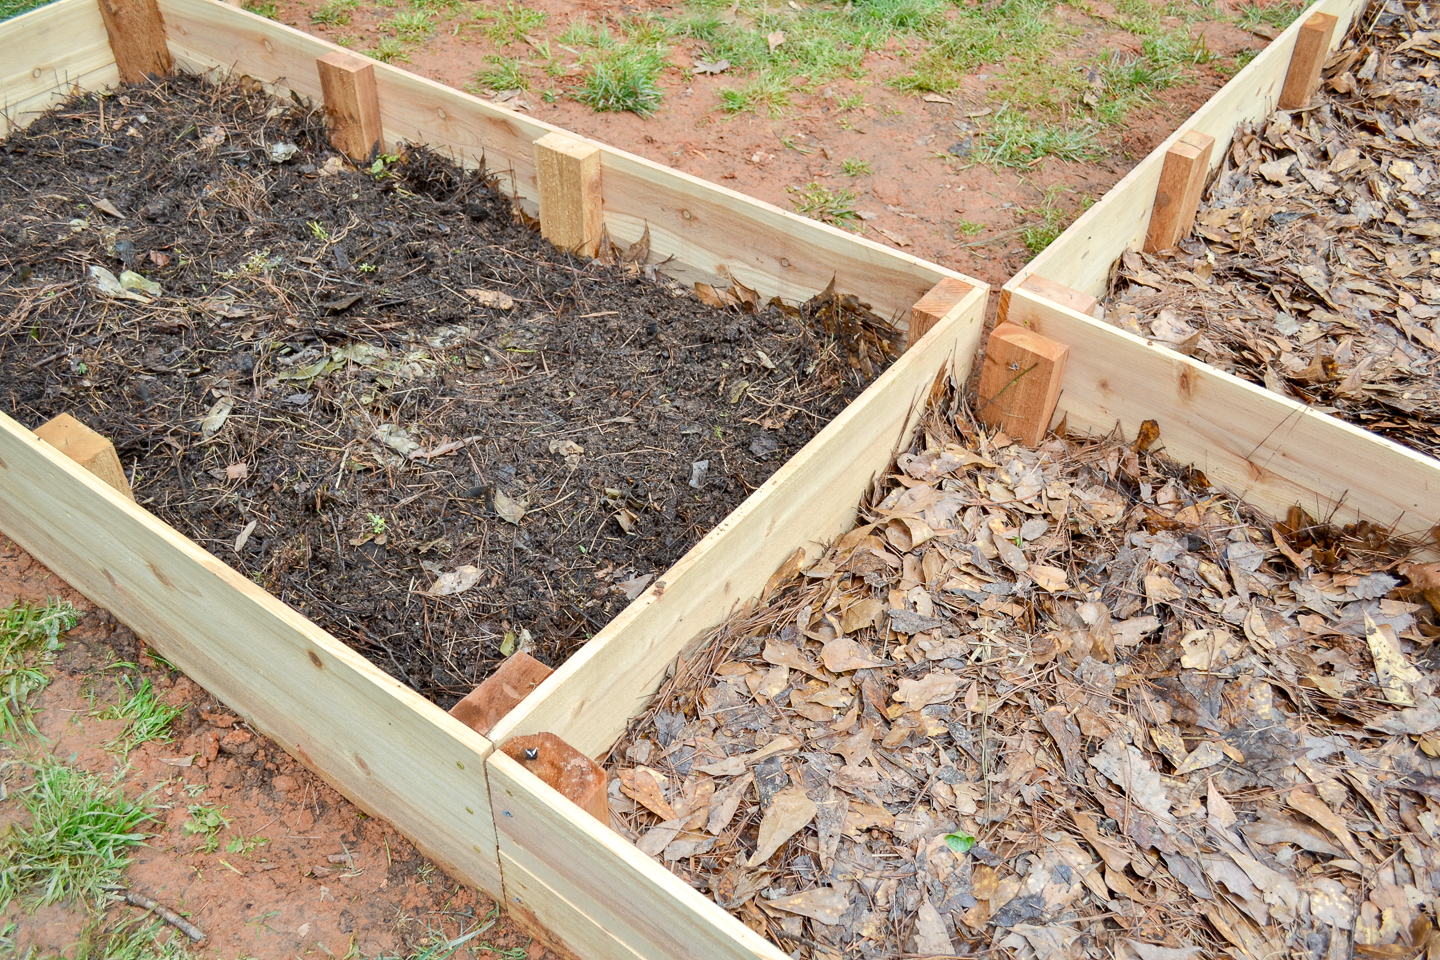 layered garden beds to fill with homemade compost and soil